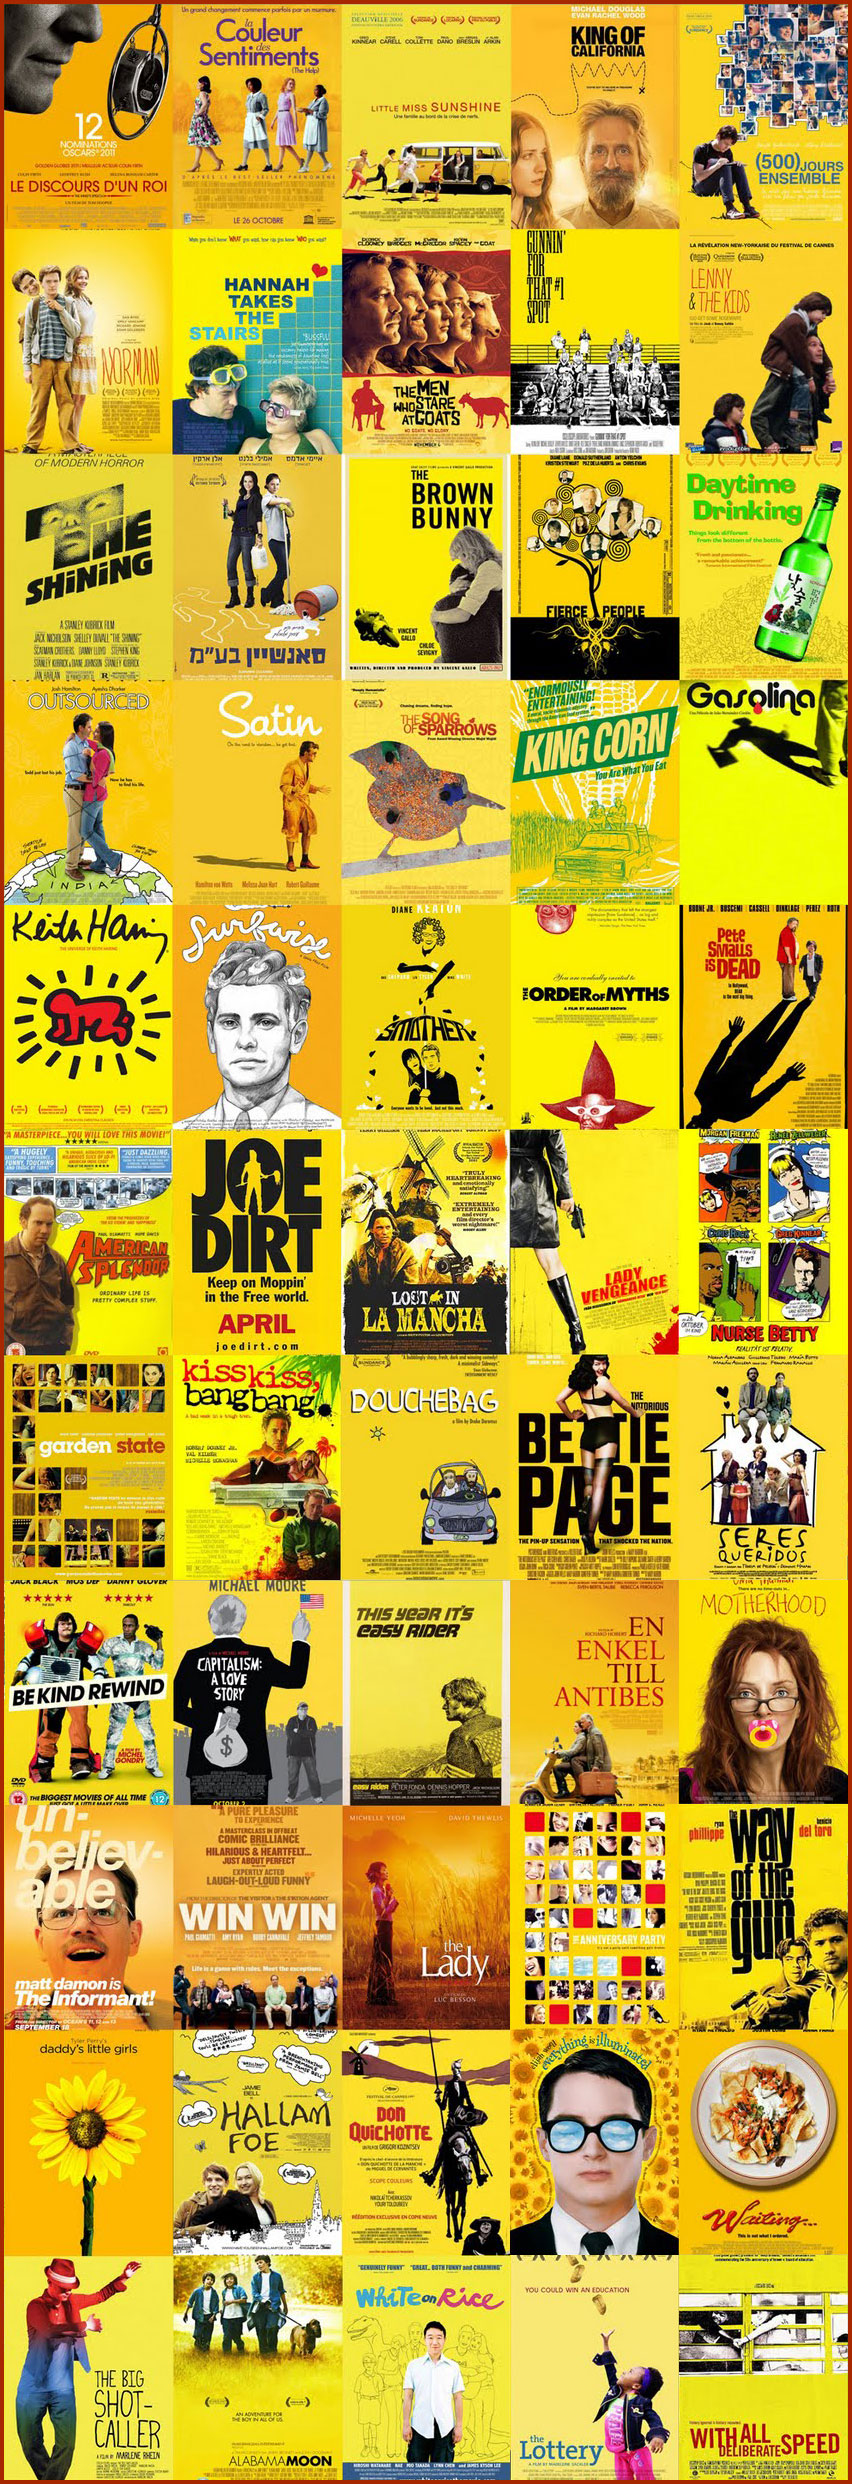 Revolutionary films love yellow